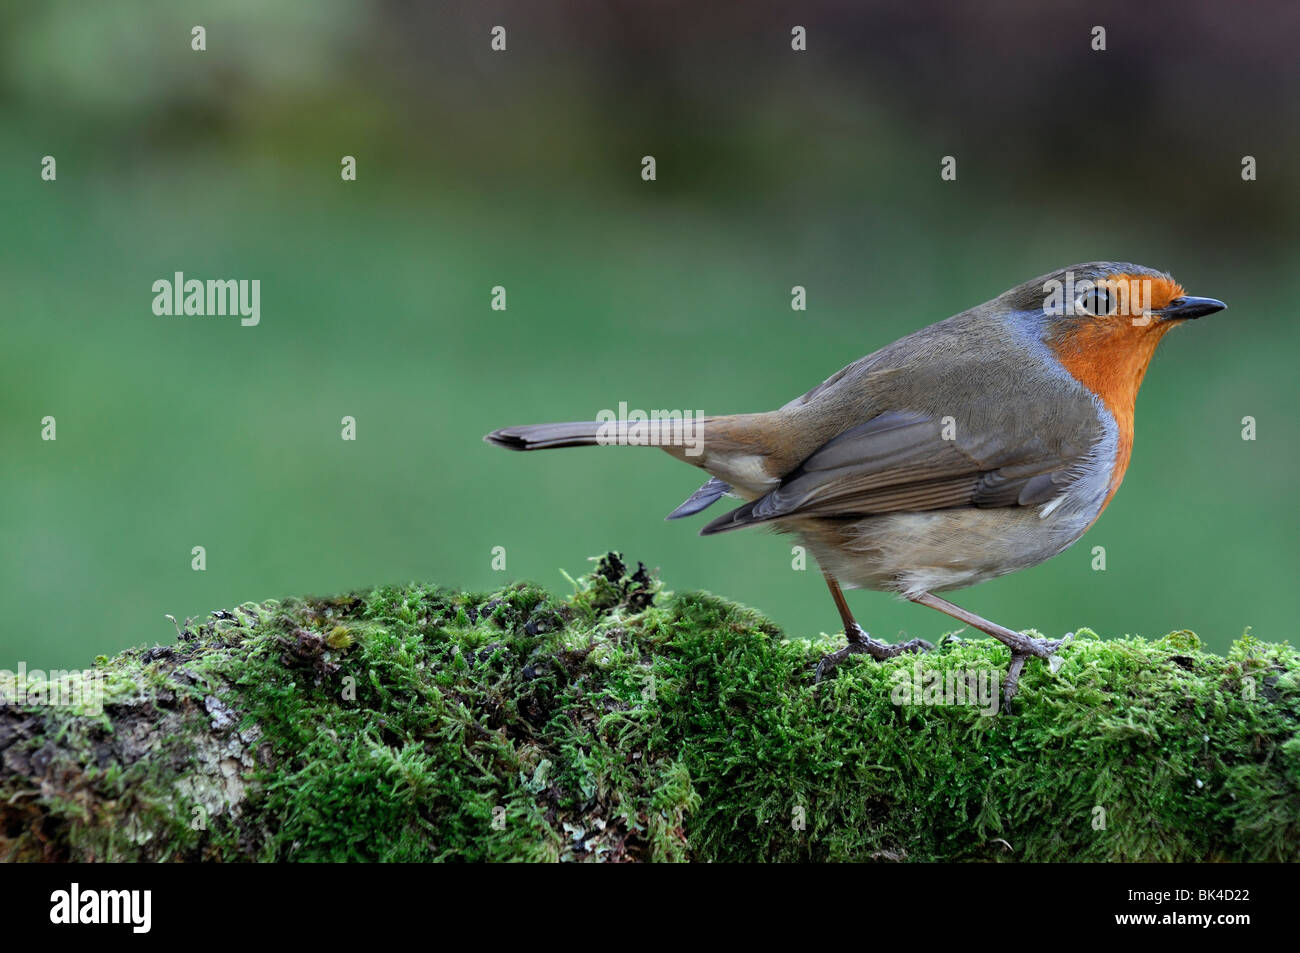 Erithacus Rubecula robin redbreast bird standing perched perch looking moss lichen cover covered branch garden cautious Stock Photo